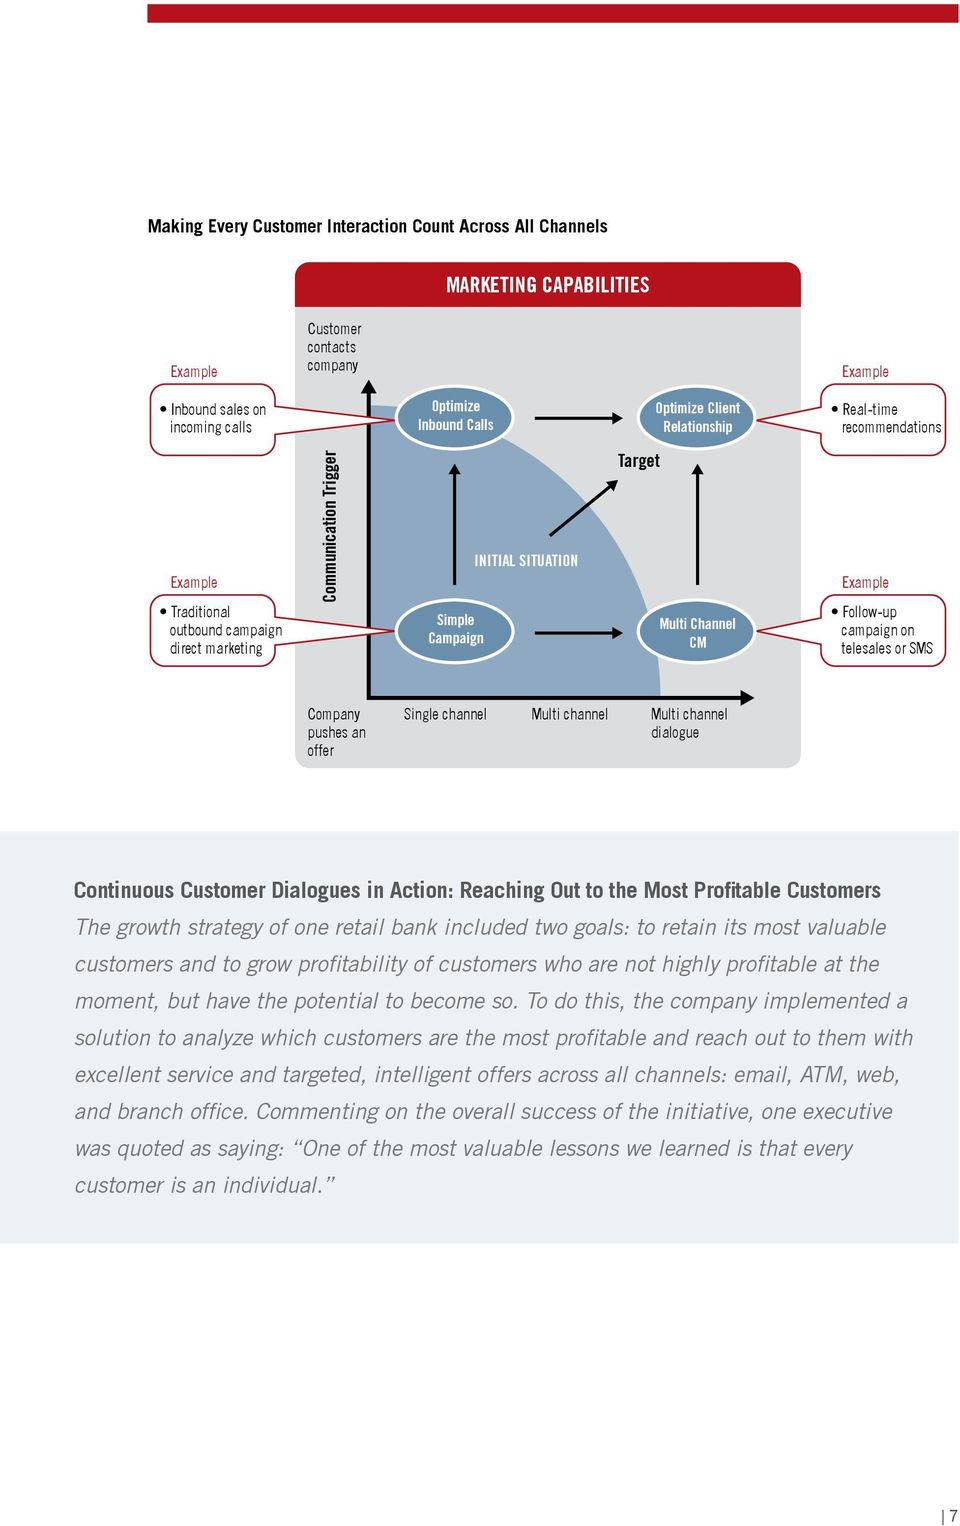 campaign on telesales or SMS Company pushes an offer Single channel Multi channel Multi channel dialogue Continuous Customer Dialogues in Action: Reaching Out to the Most Profitable Customers The